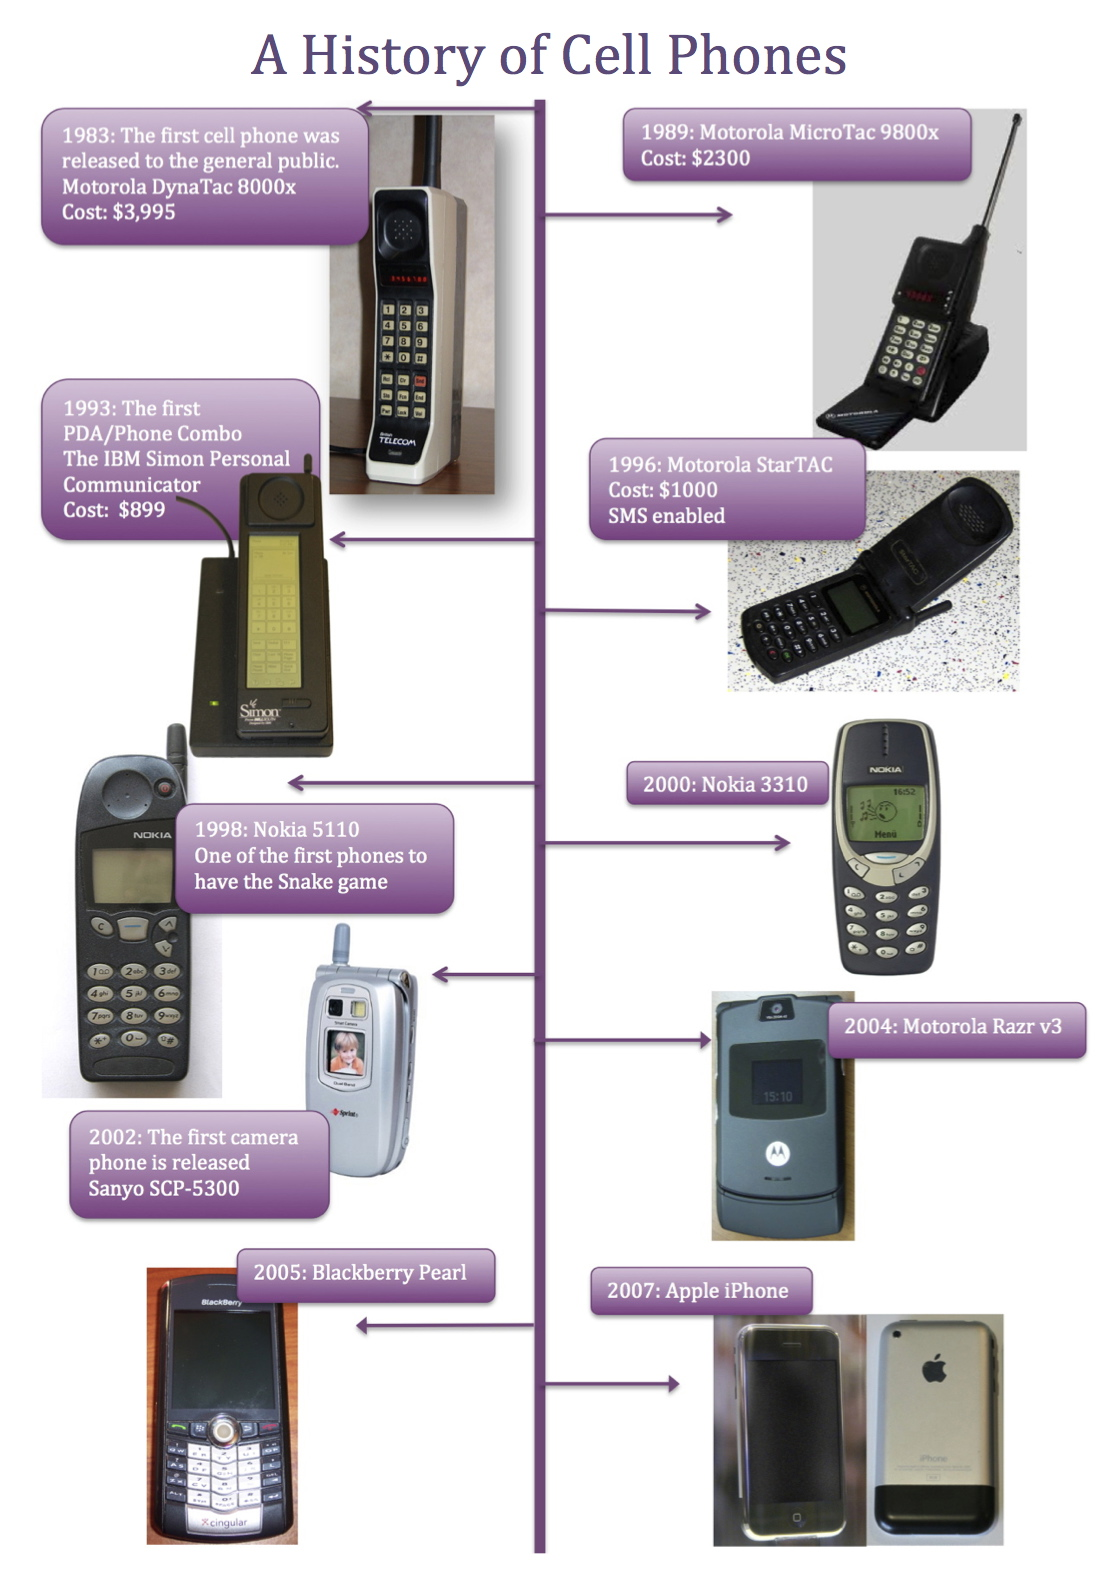 the history of cell phones essay websitereports243 web fc2 com the history of cell phones essay